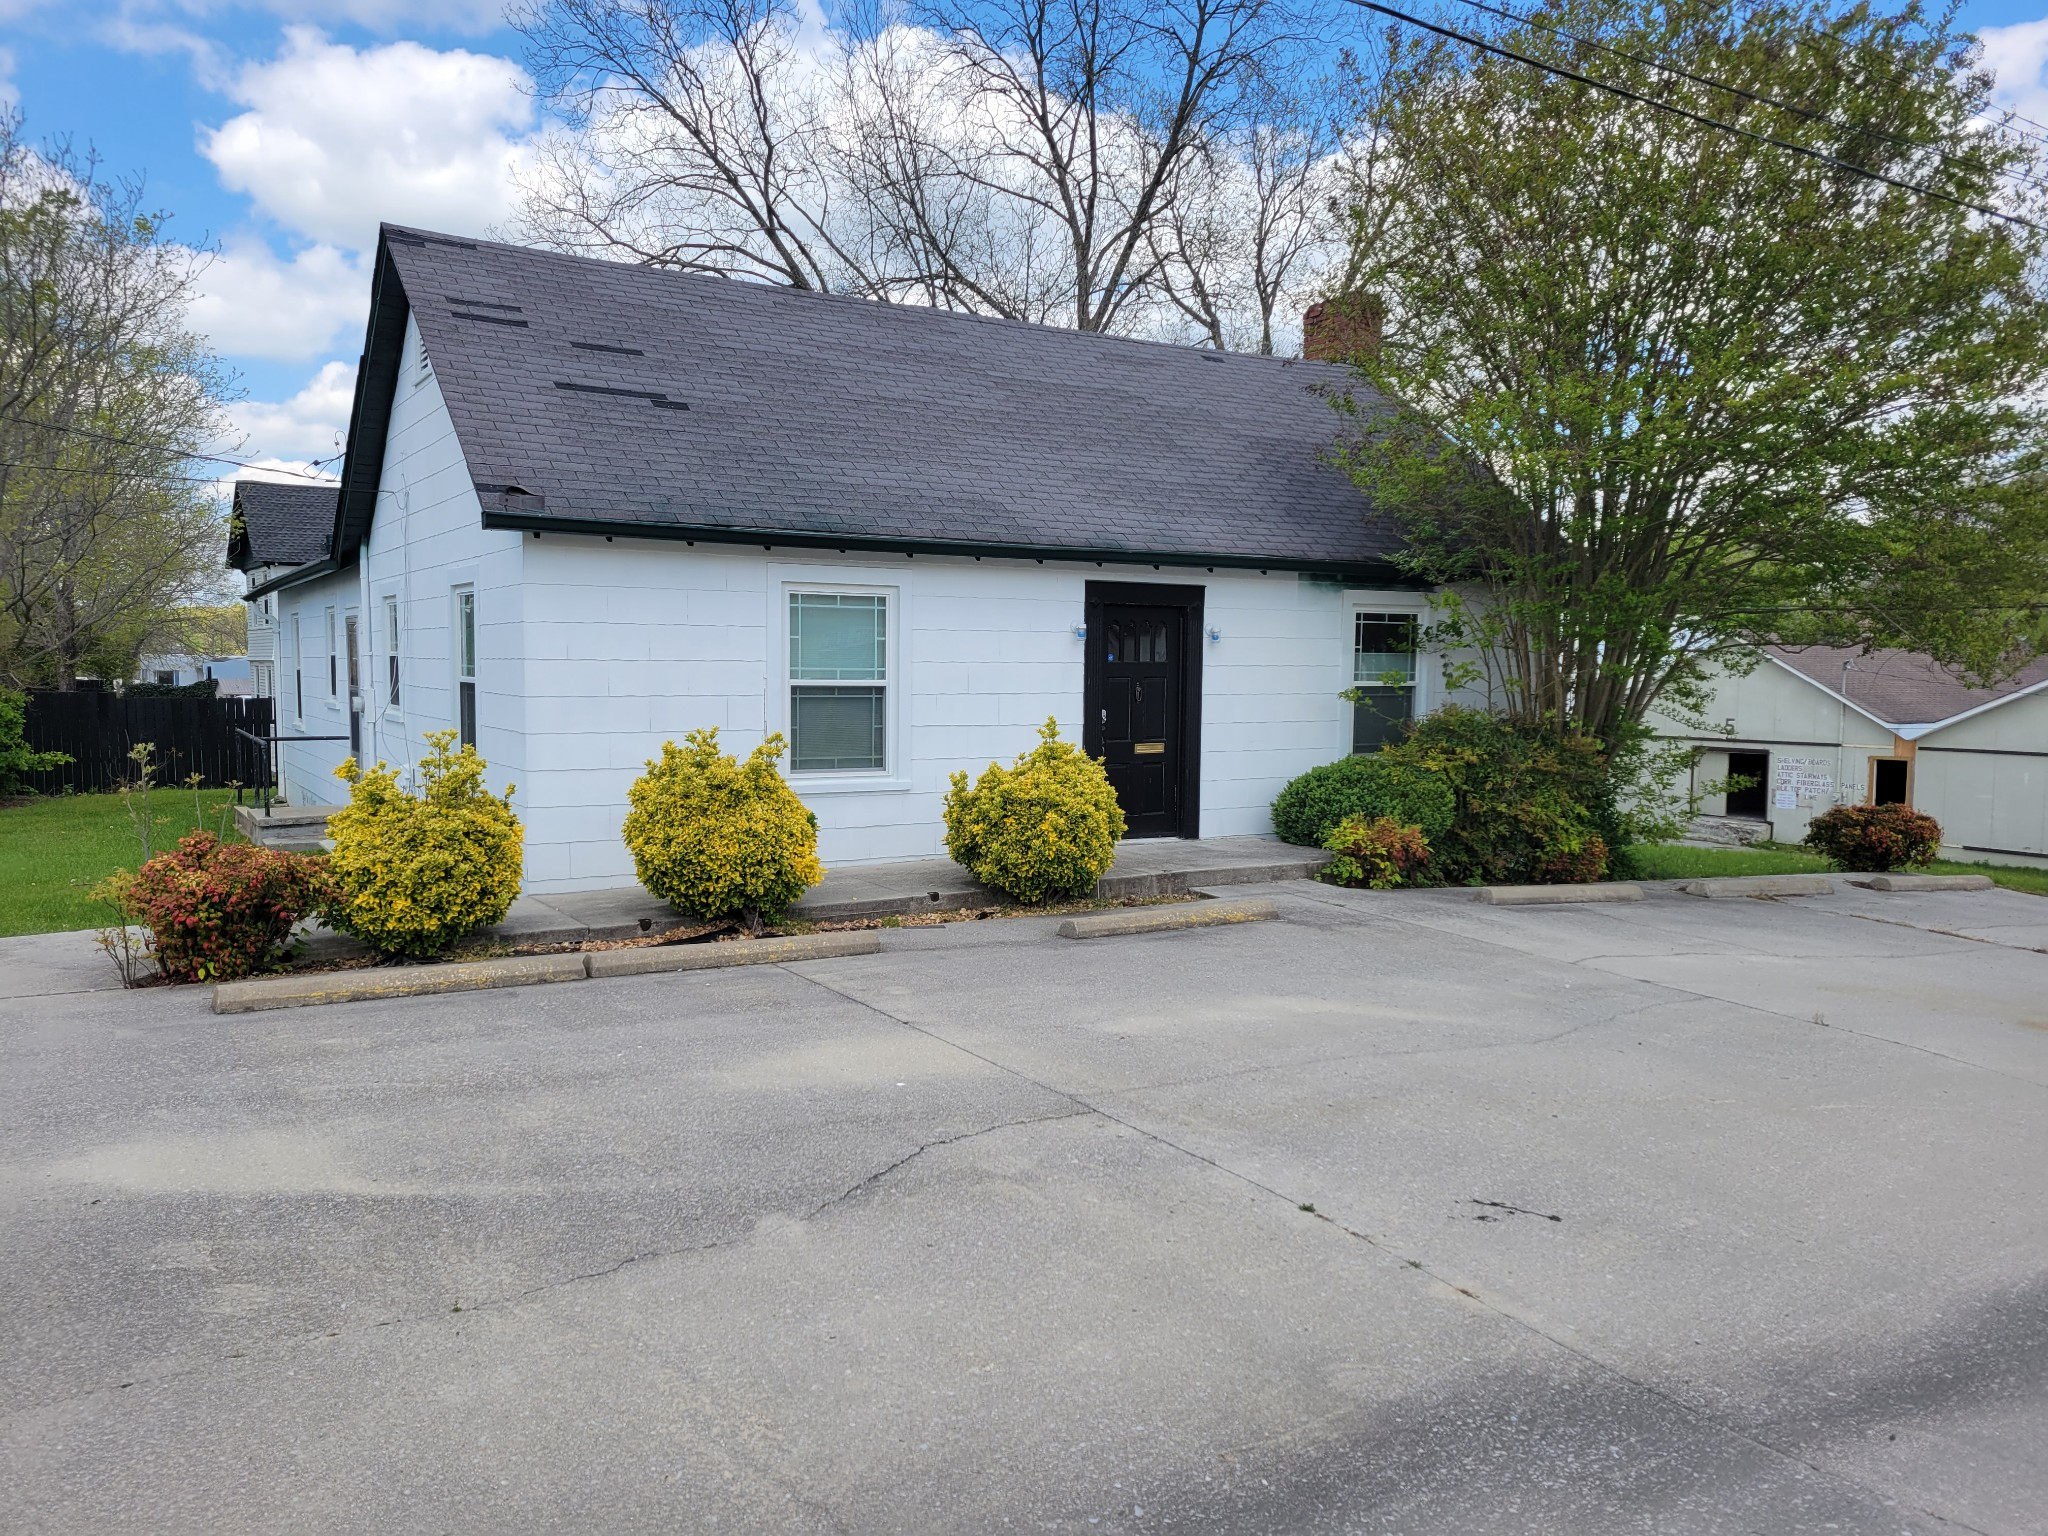 209 E McLean St Property Photo - Manchester, TN real estate listing